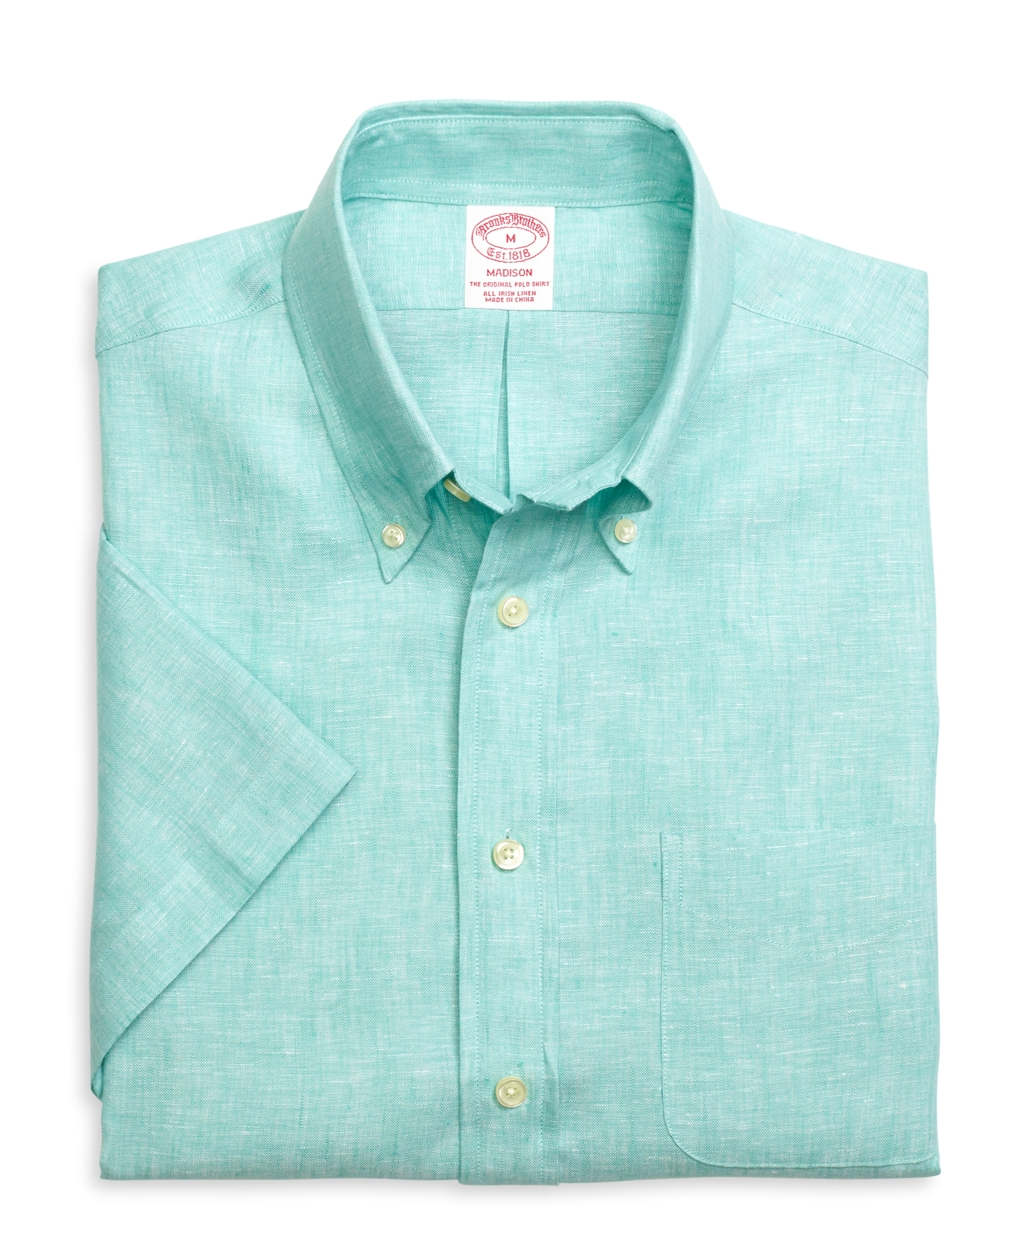 Brooks brothers madison fit linen short sleeve sport shirt Brooks brothers shirt size guide